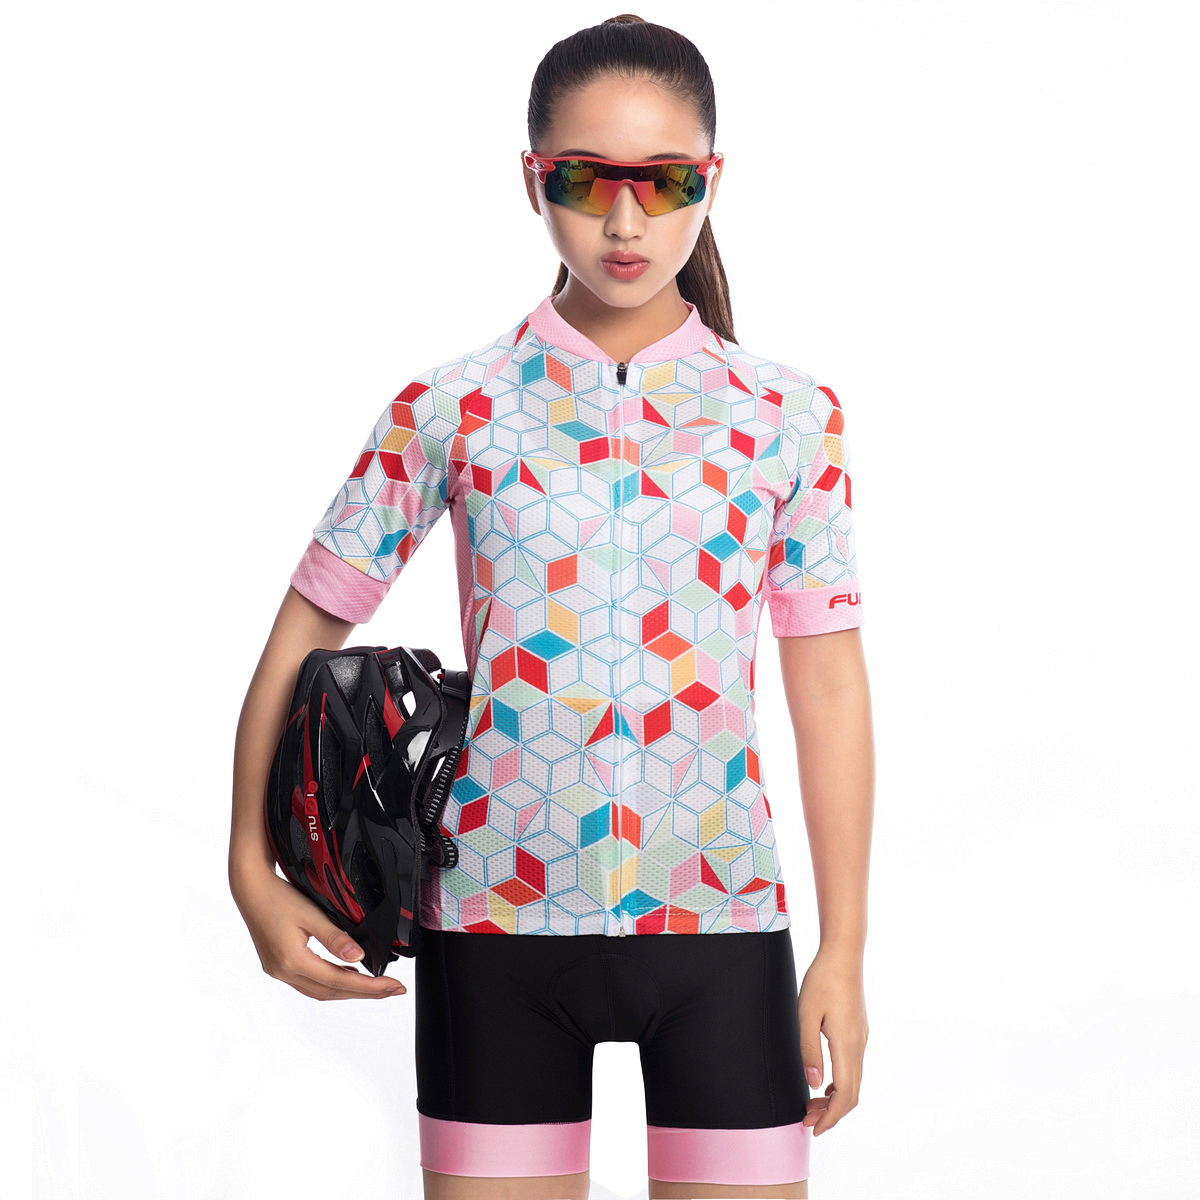 FUALRNY Summer Women MTB Bike Cycling Clothing Breathable Mountain Bicycle Clothes Ropa Ciclismo Quick Dry Cycling Jersey Sets|Cycling Sets| |  - title=